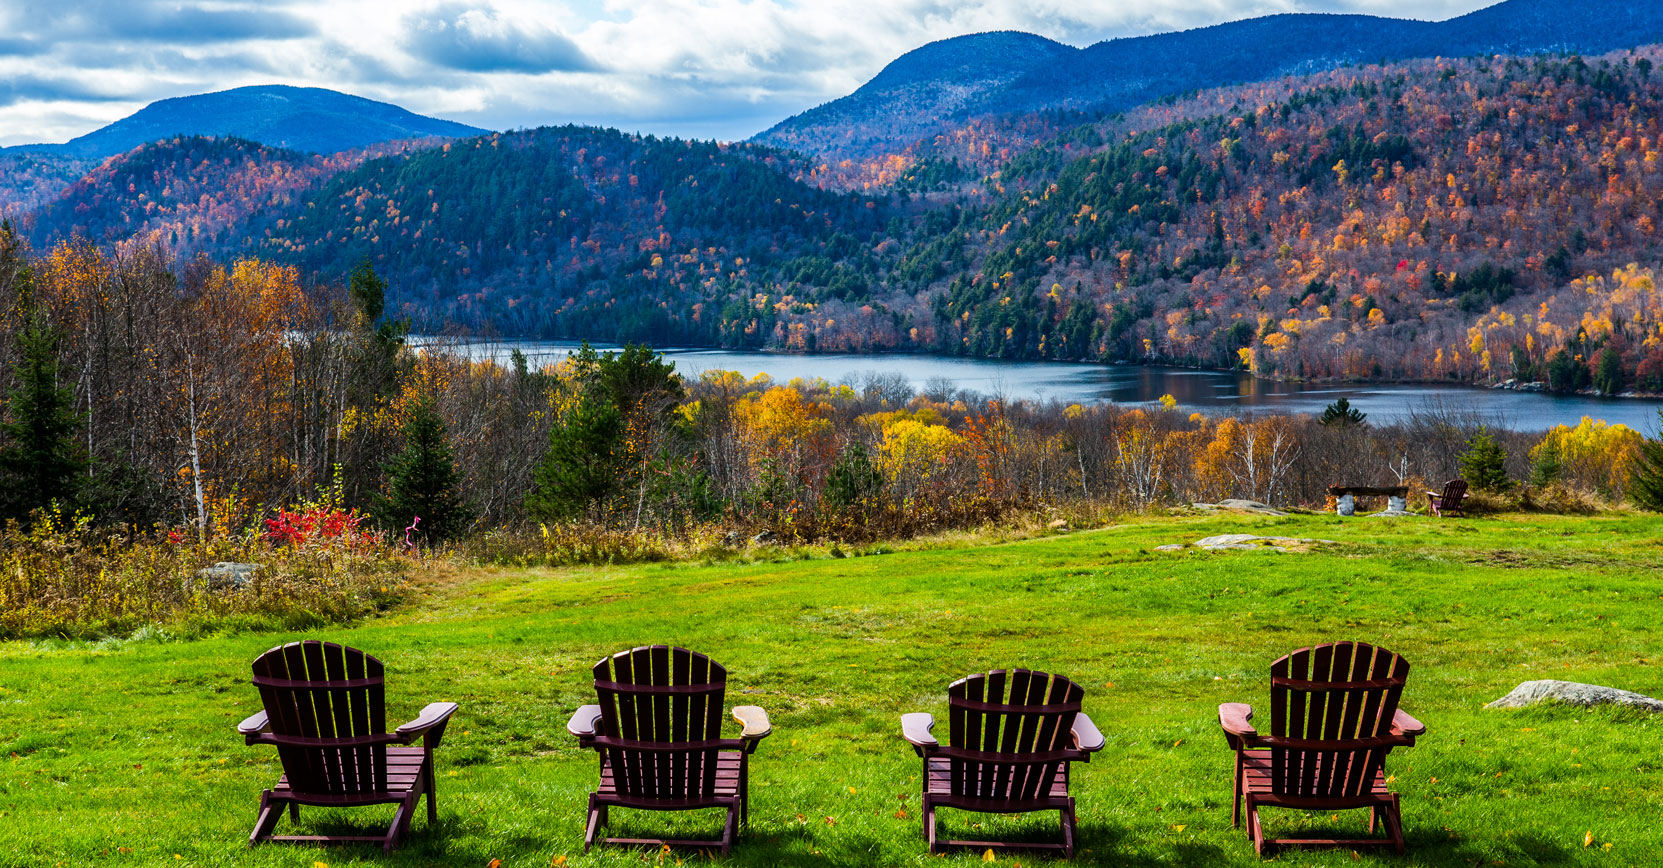 adk-chairs-mountains-home-slider